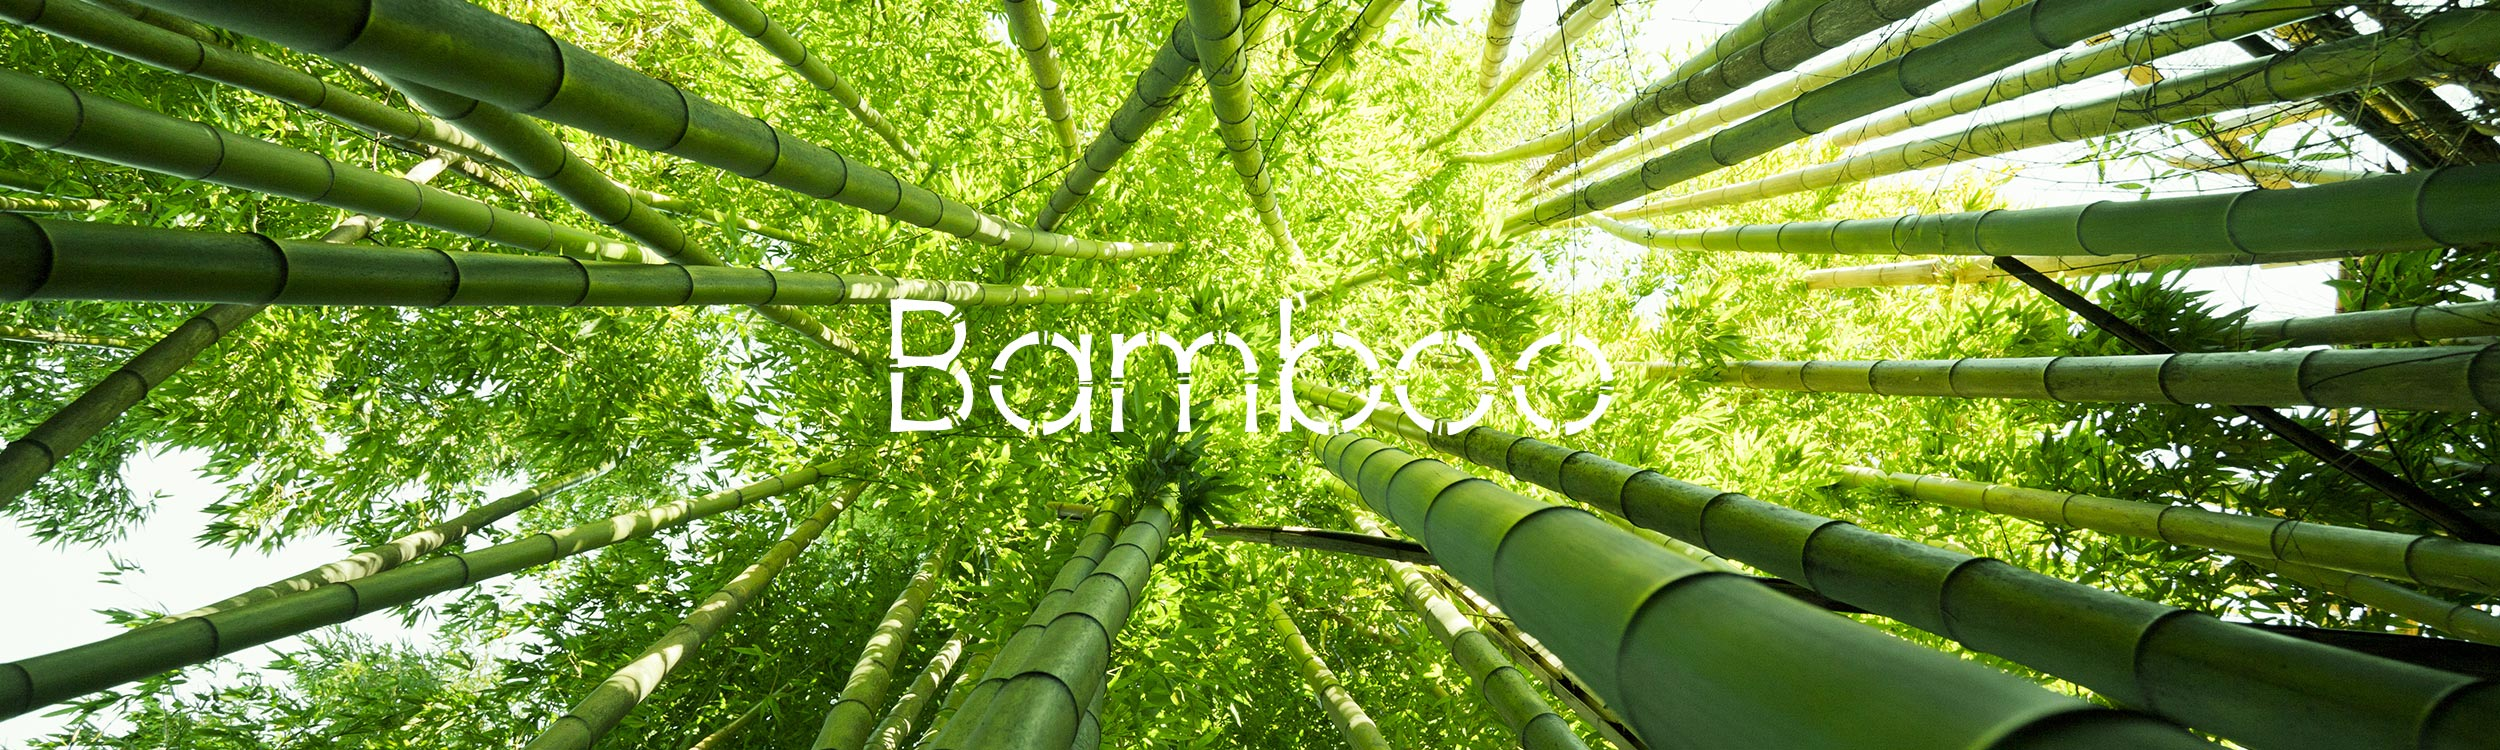 Andrew Black Bamboo Sustainably-sourced Bamboo Fabric